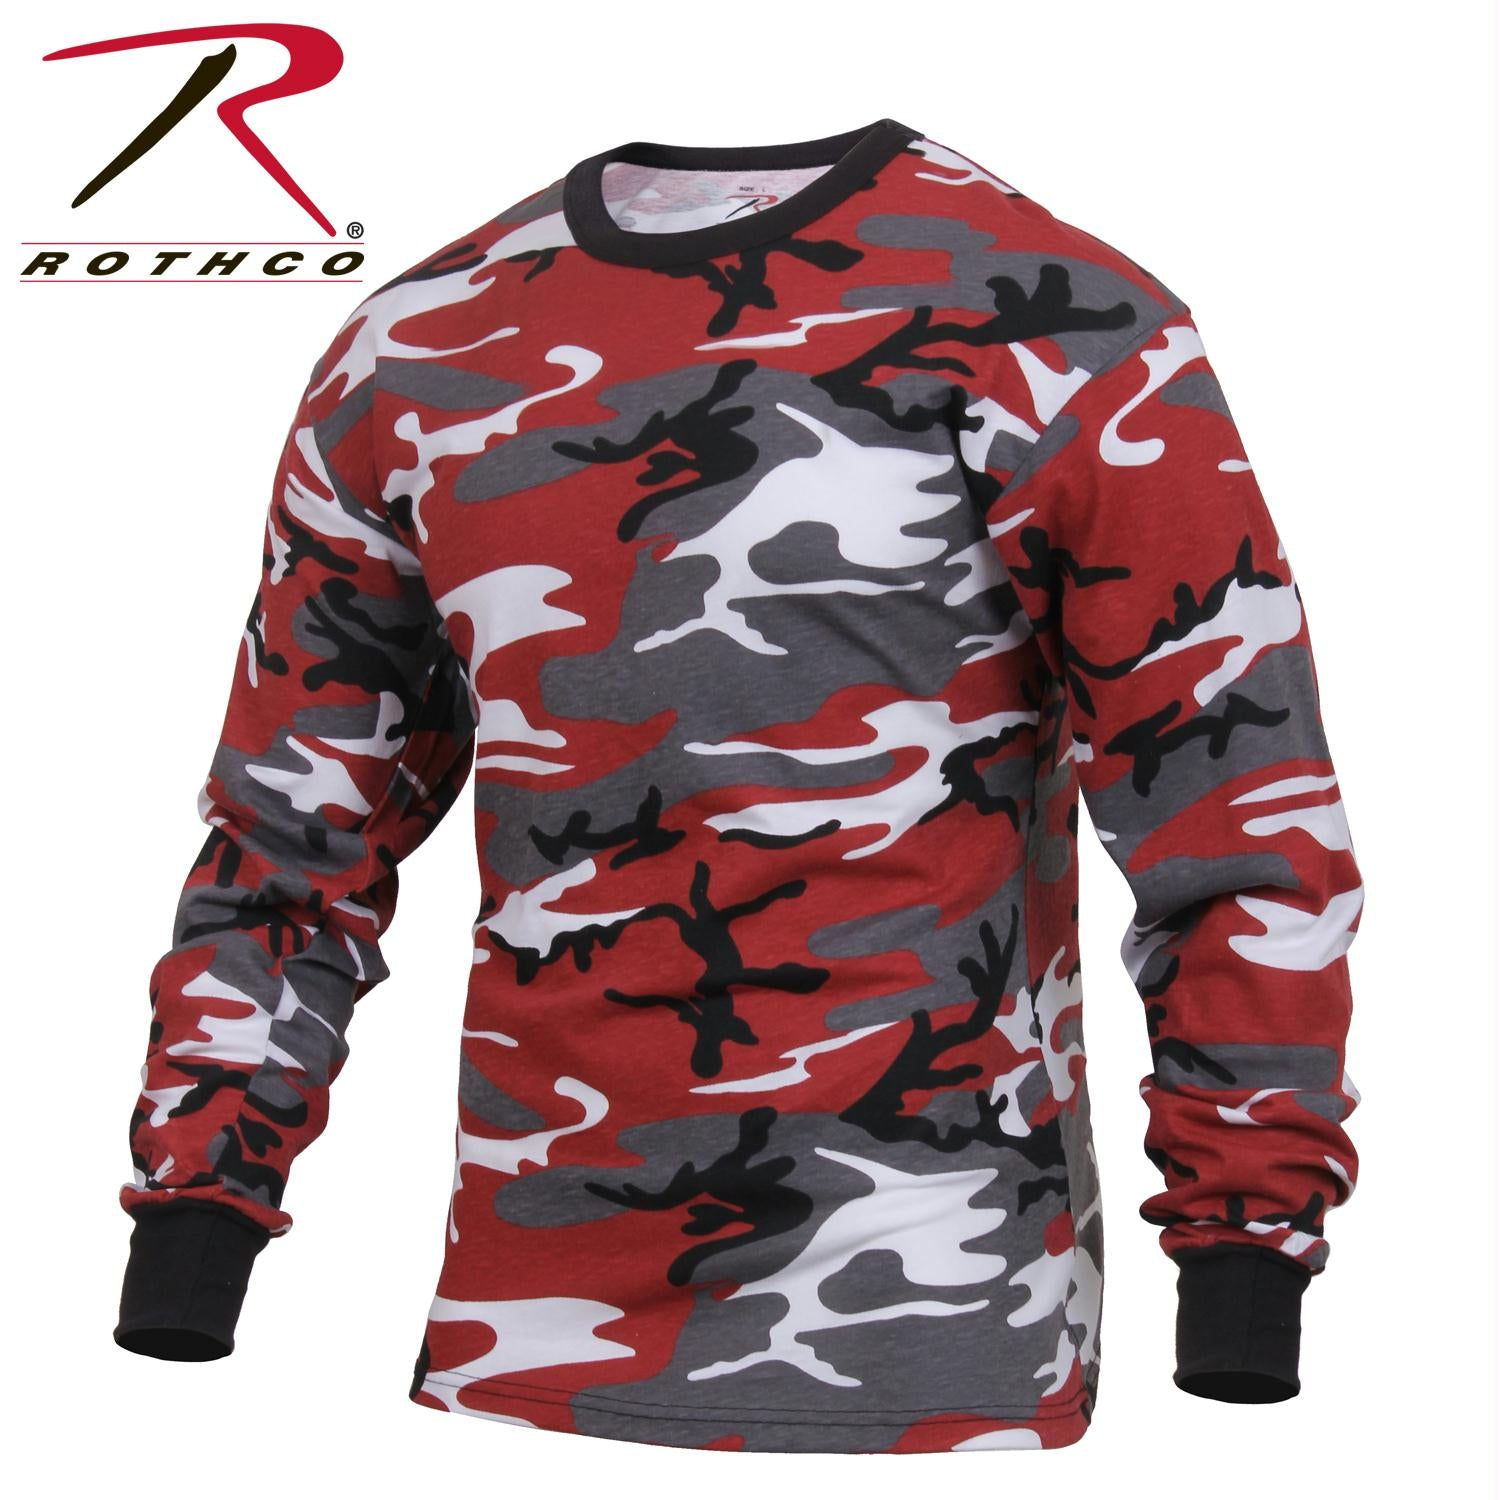 Rothco Long Sleeve Colored Camo T-Shirt - Red Camo / 3XL